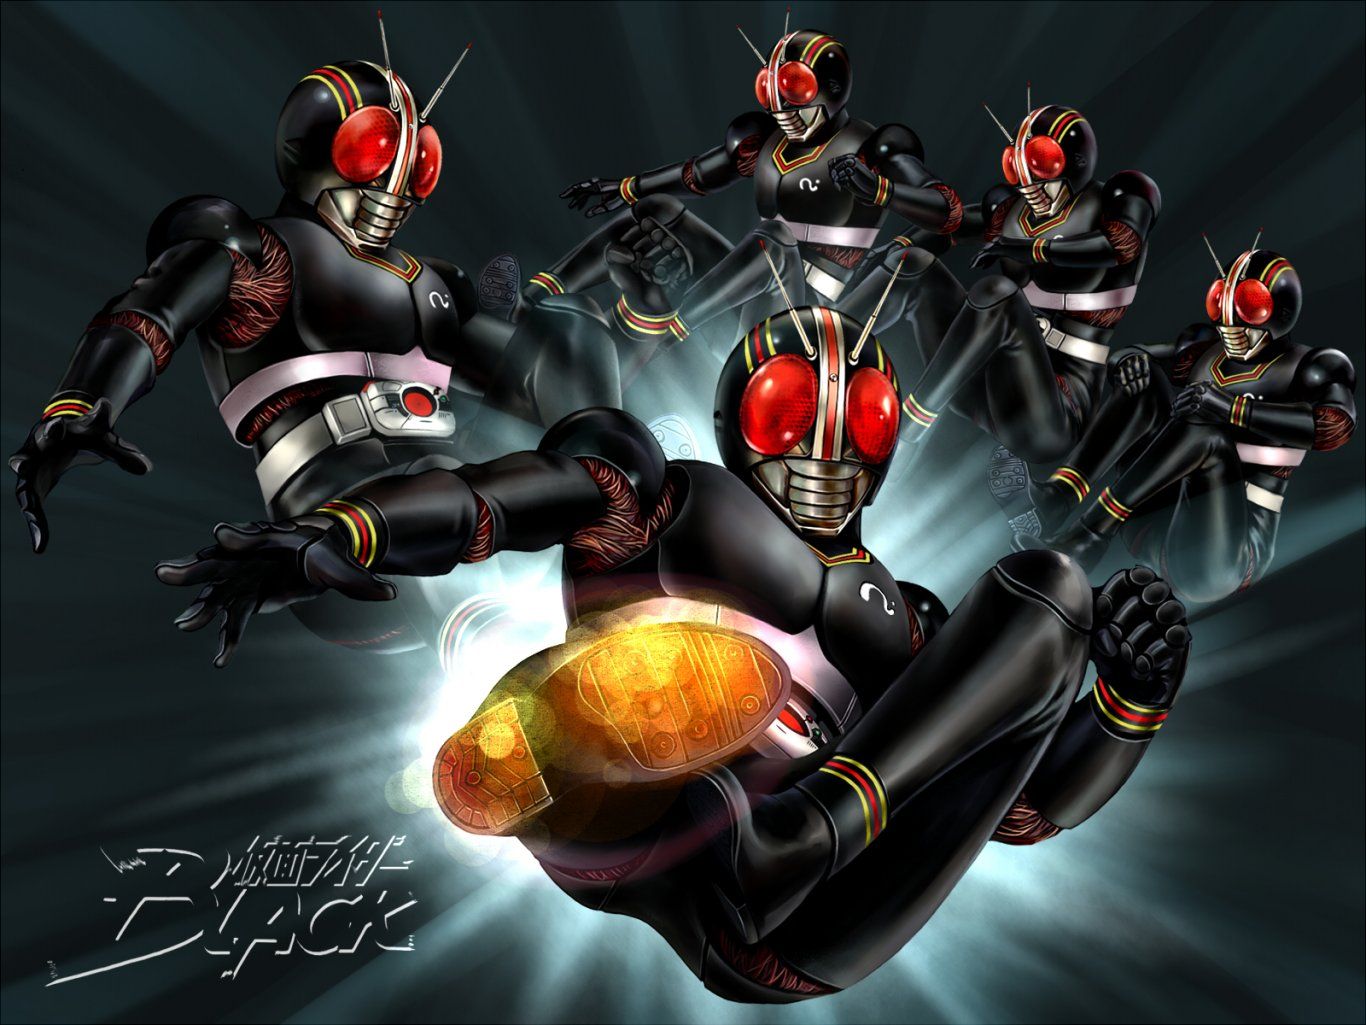 Henshin And Rollout Kamen Rider Wallpaper Kamen Rider